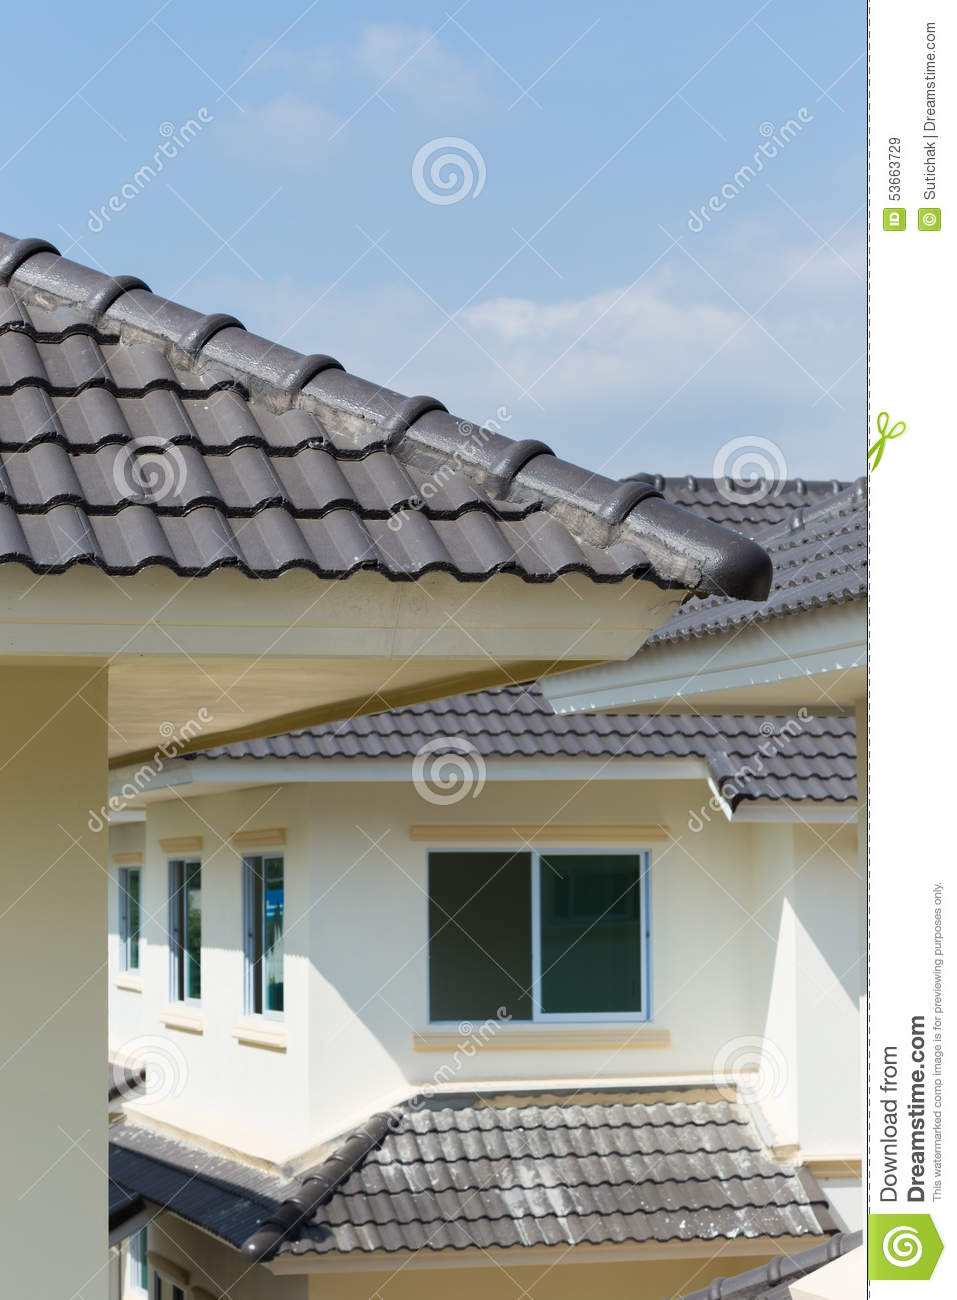 Black roof tiles on house stock image image of industry for Black roof house